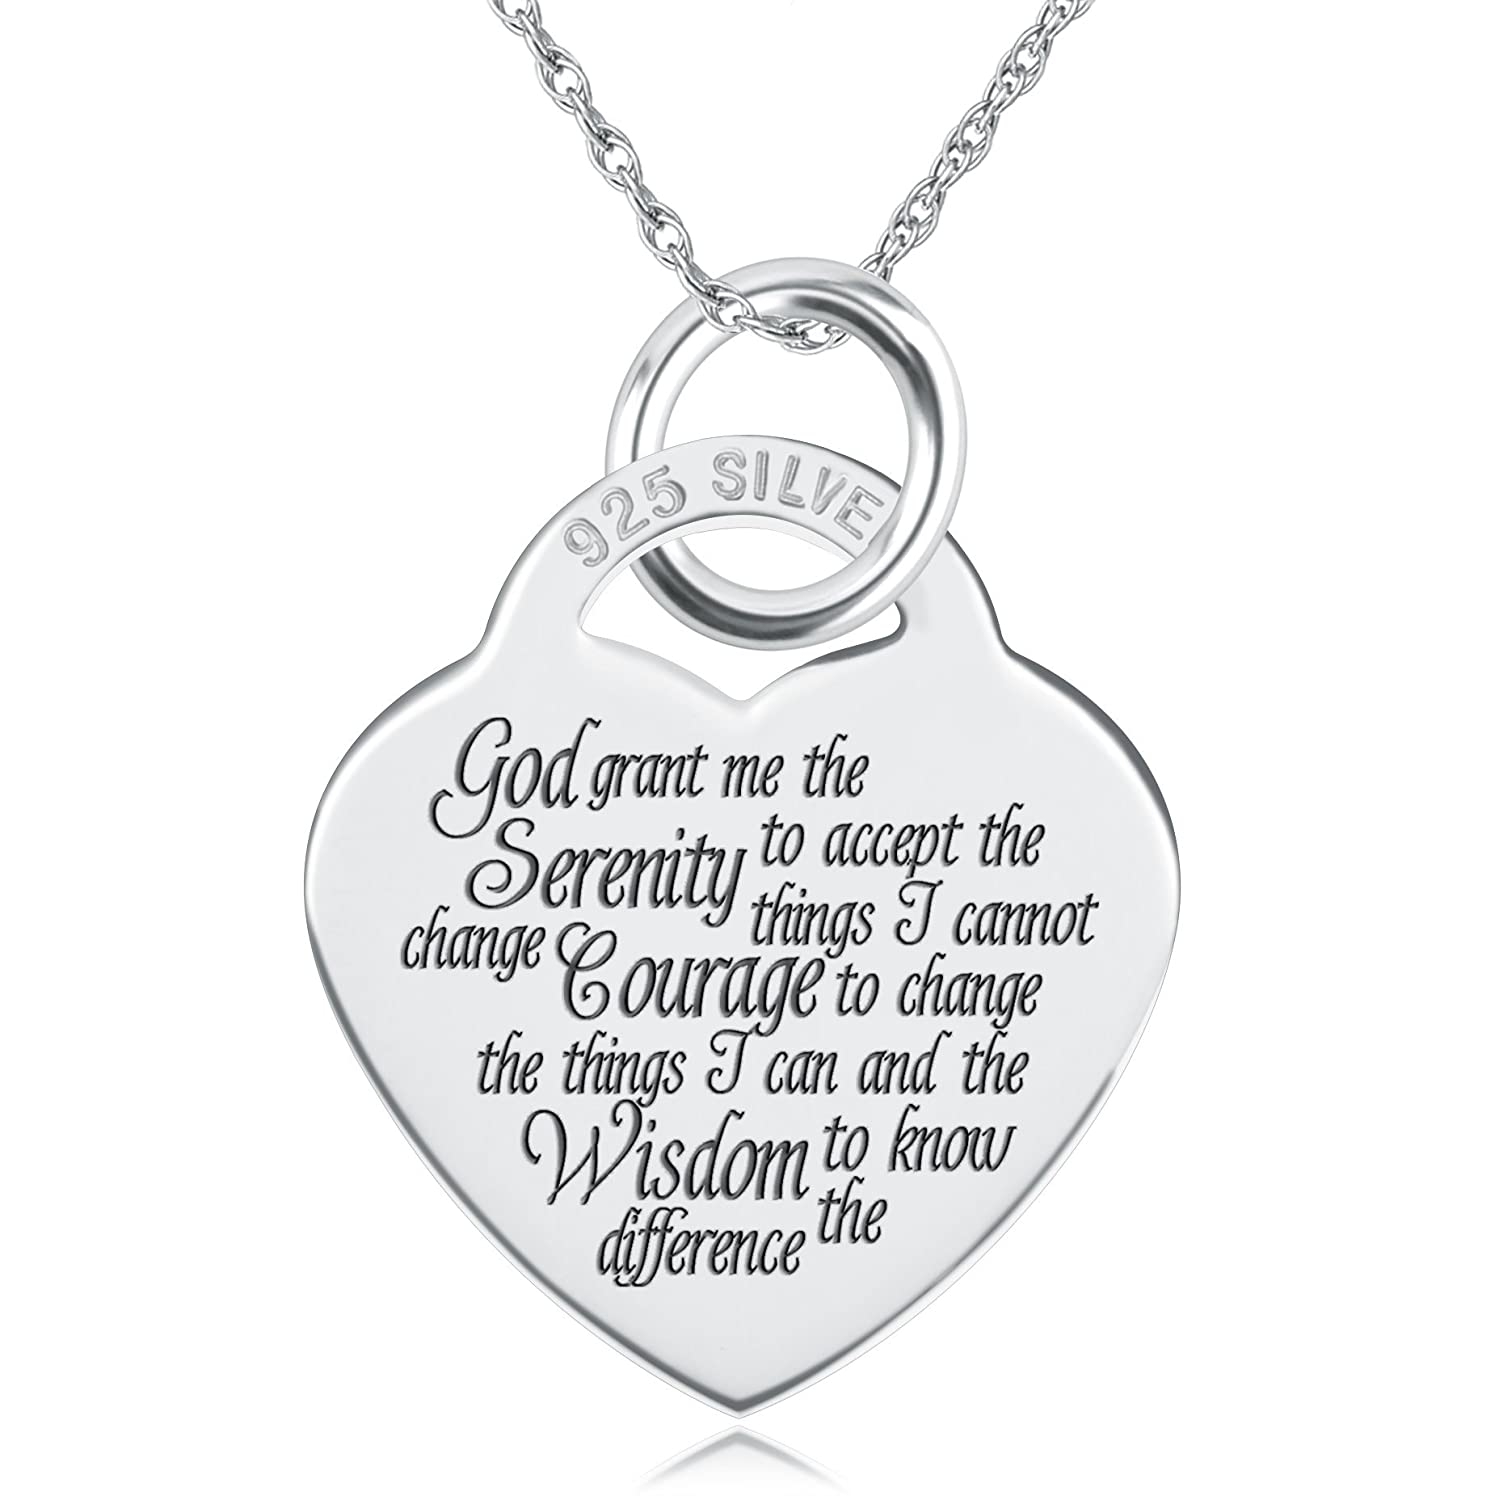 dp and chain lord serenity steel aoiy unisex s pendant medallion laoyou lords verse prayer cross necklace stainless mens christian bible